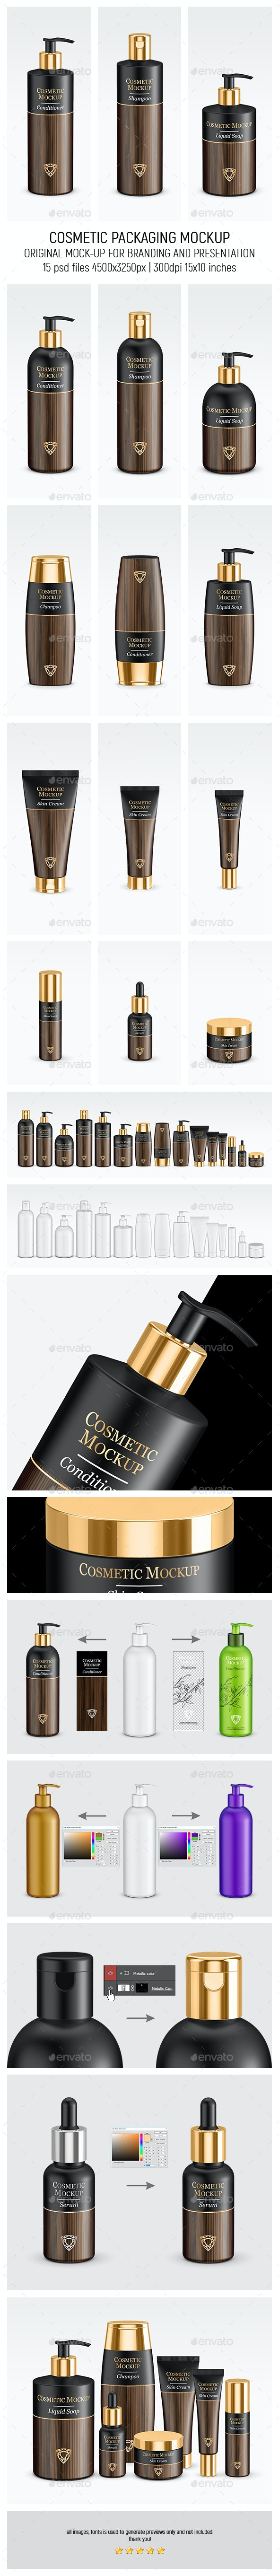 Gold Cosmetic Packaging Mock-up - Beauty Packaging